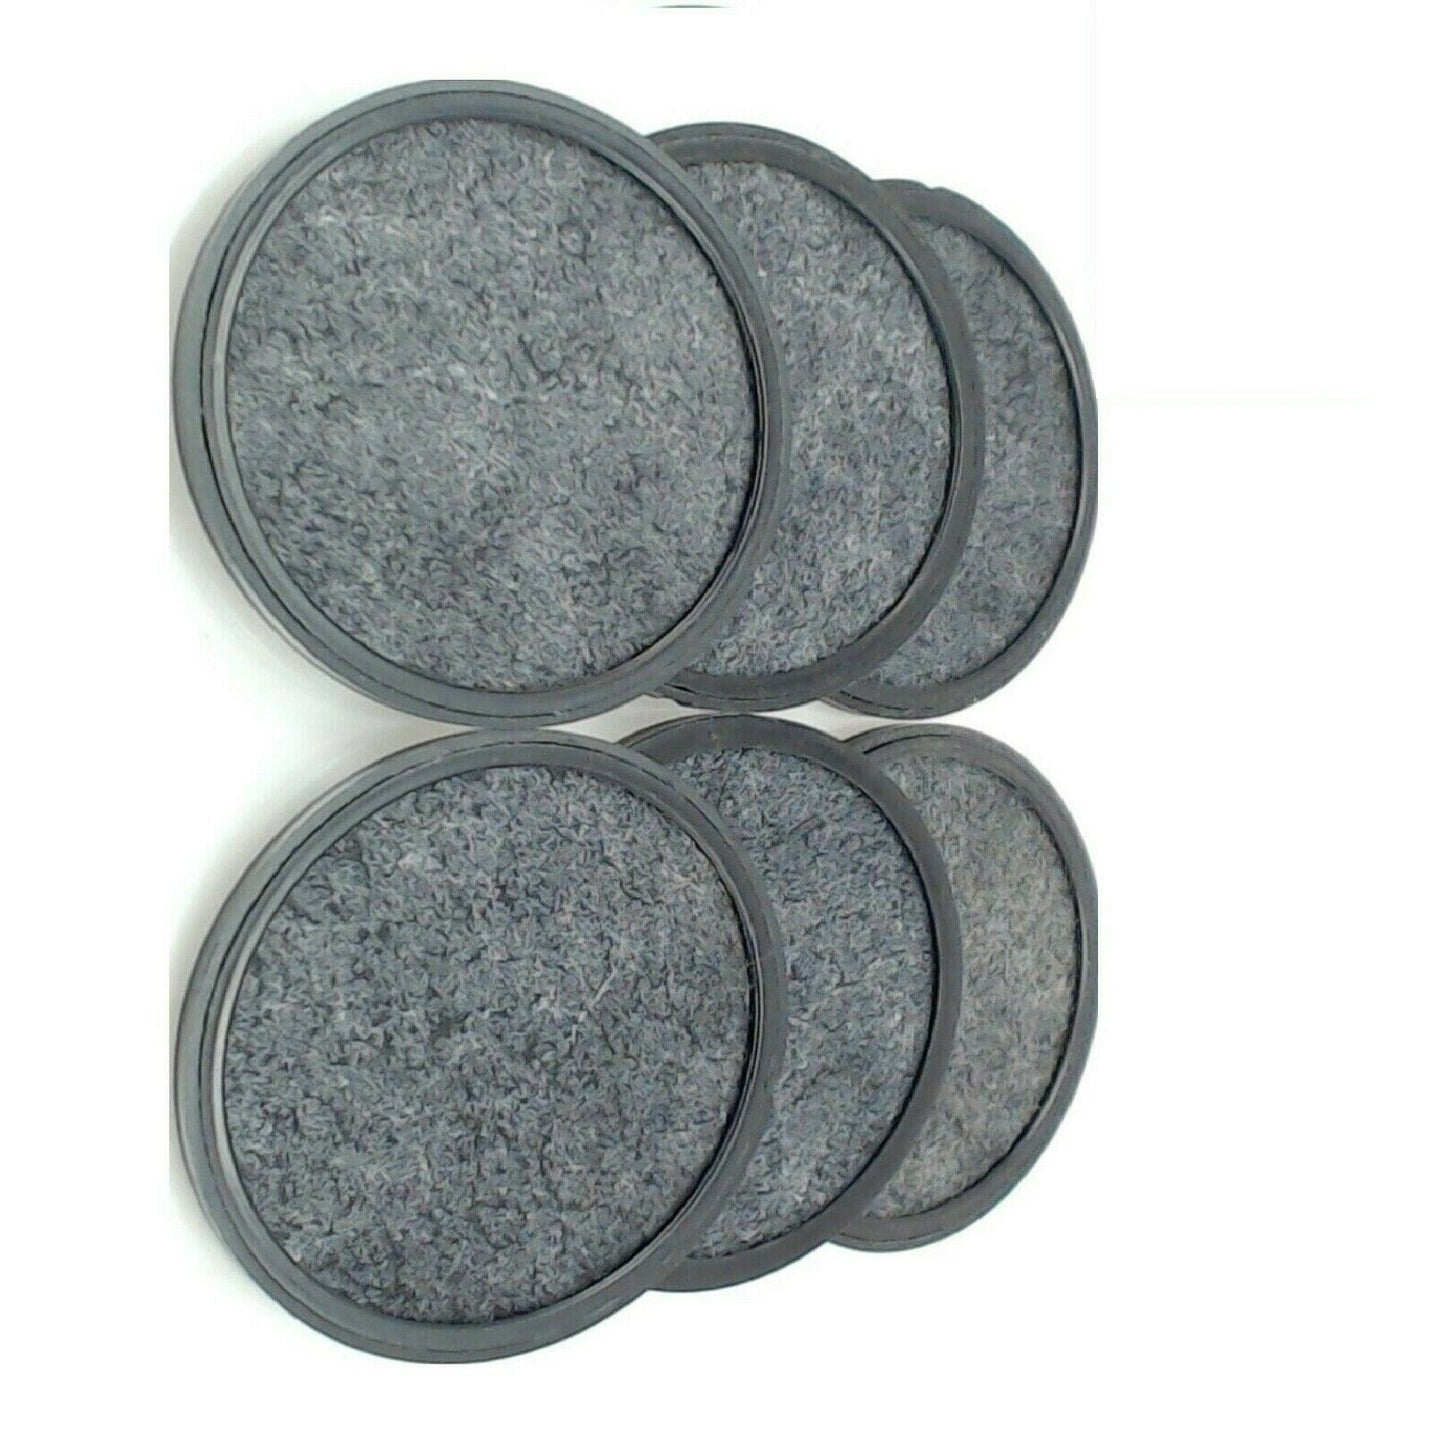 Replacement Charcoal Water Filter Disks